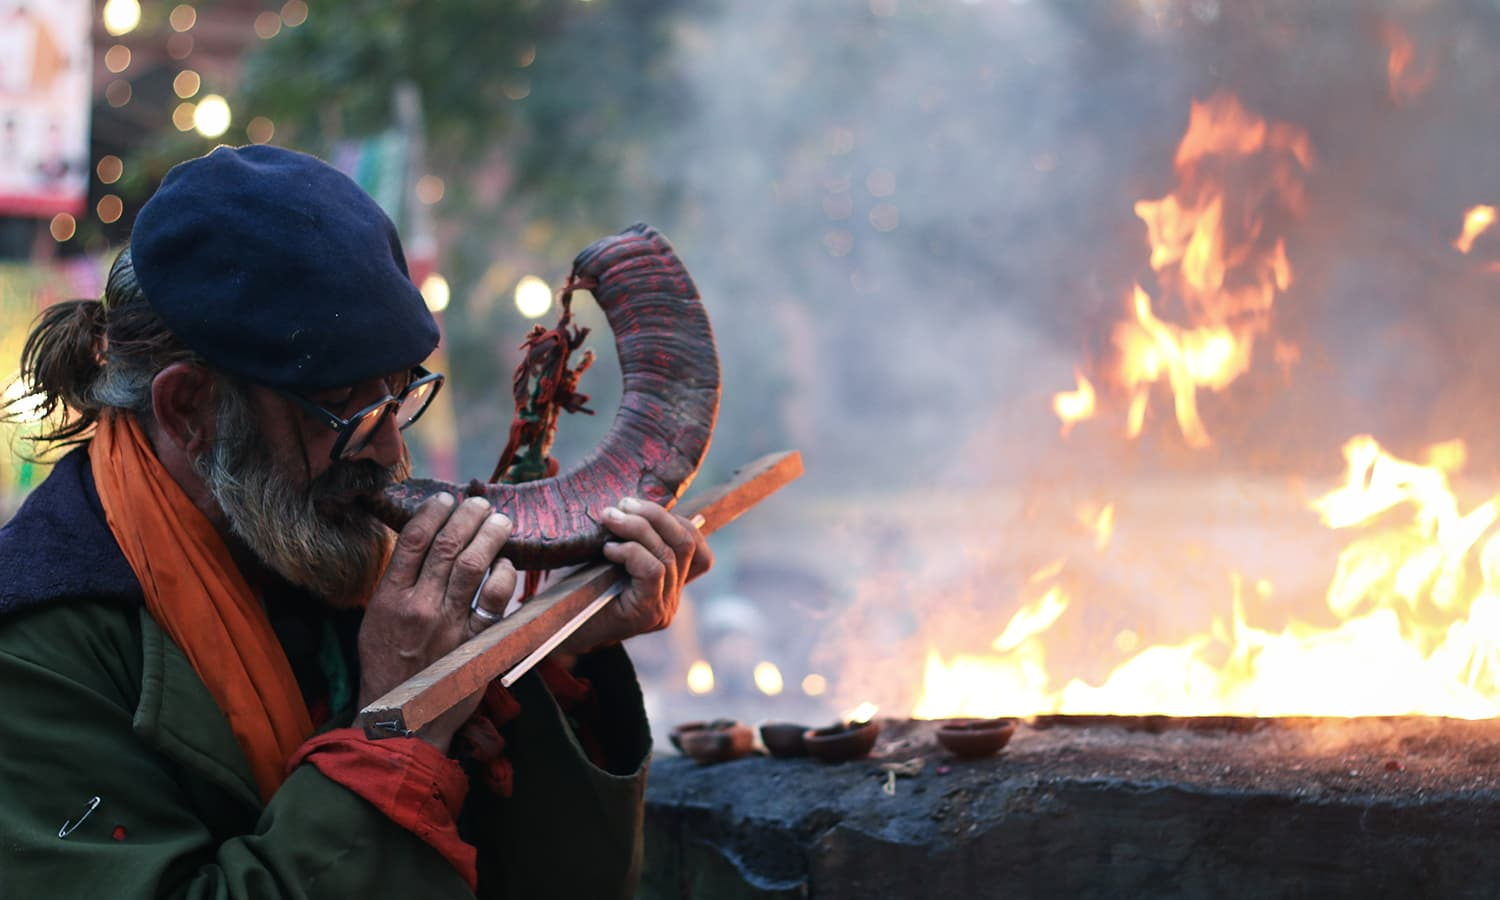 A man blows a herald at the shrine of Hazrat Madhu Lal Hassan.